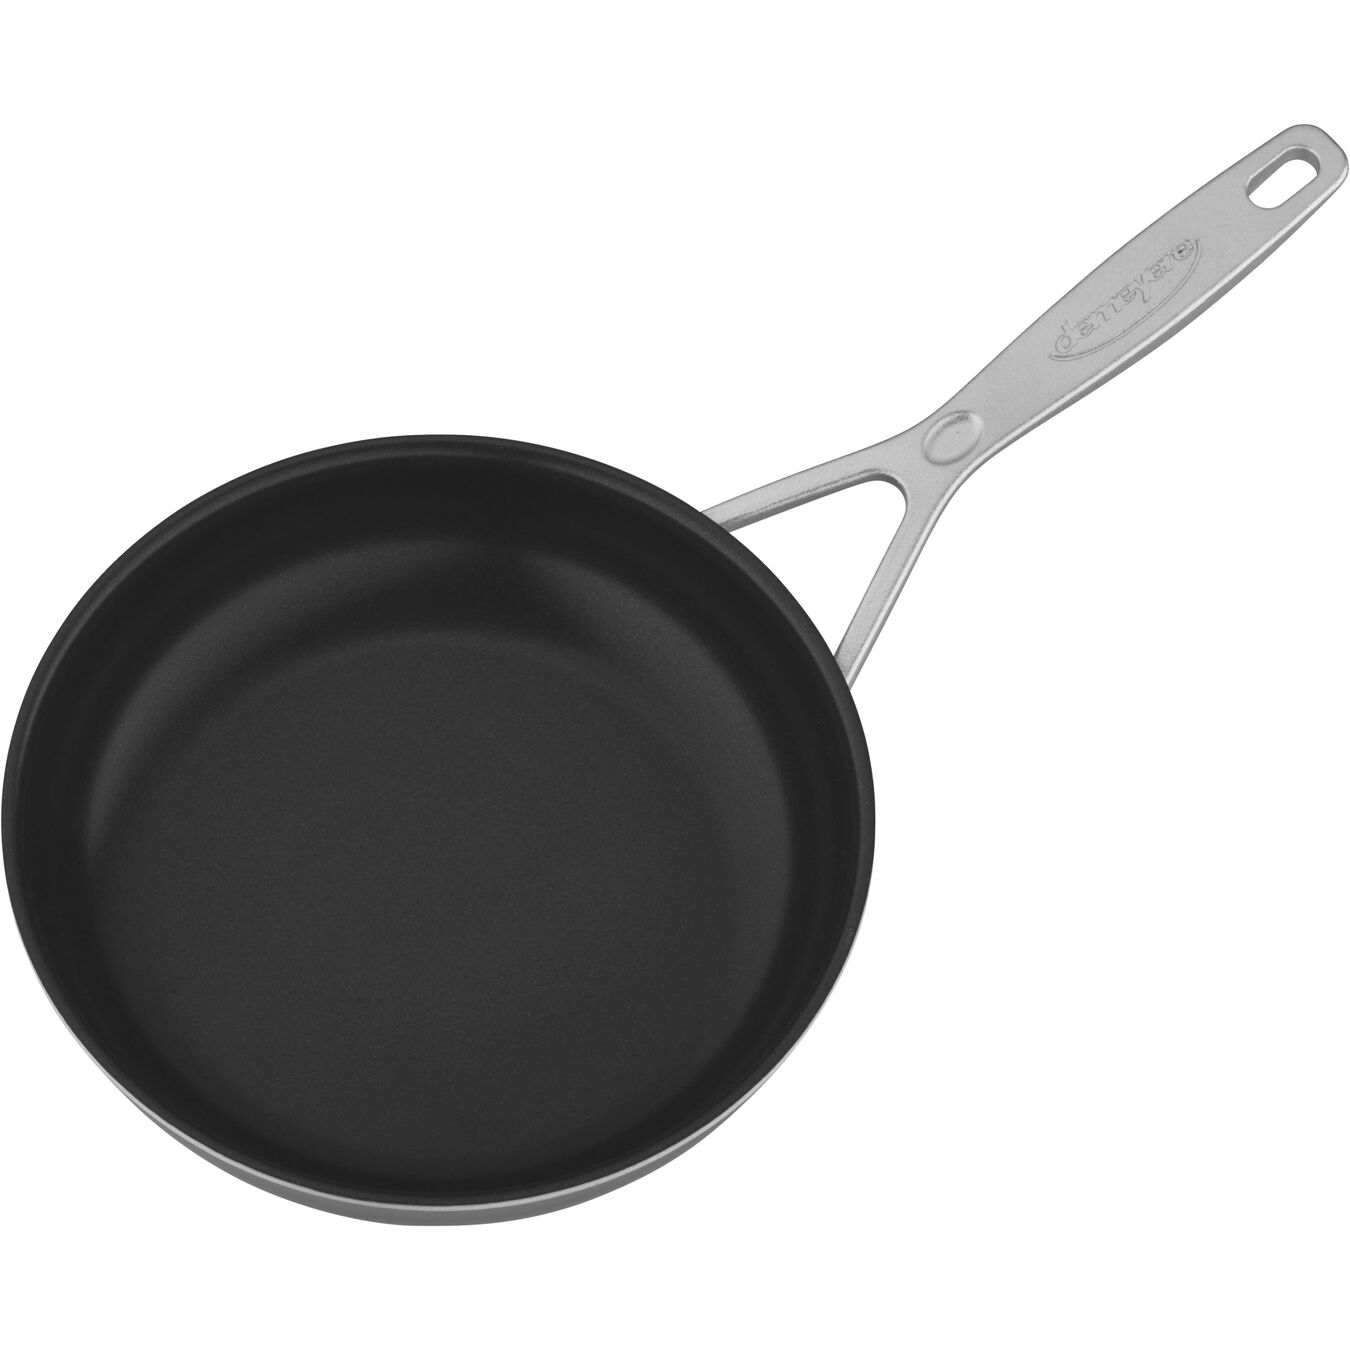 8-inch, 18/10 Stainless Steel, Non-stick, PTFE, Frying pan,,large 2